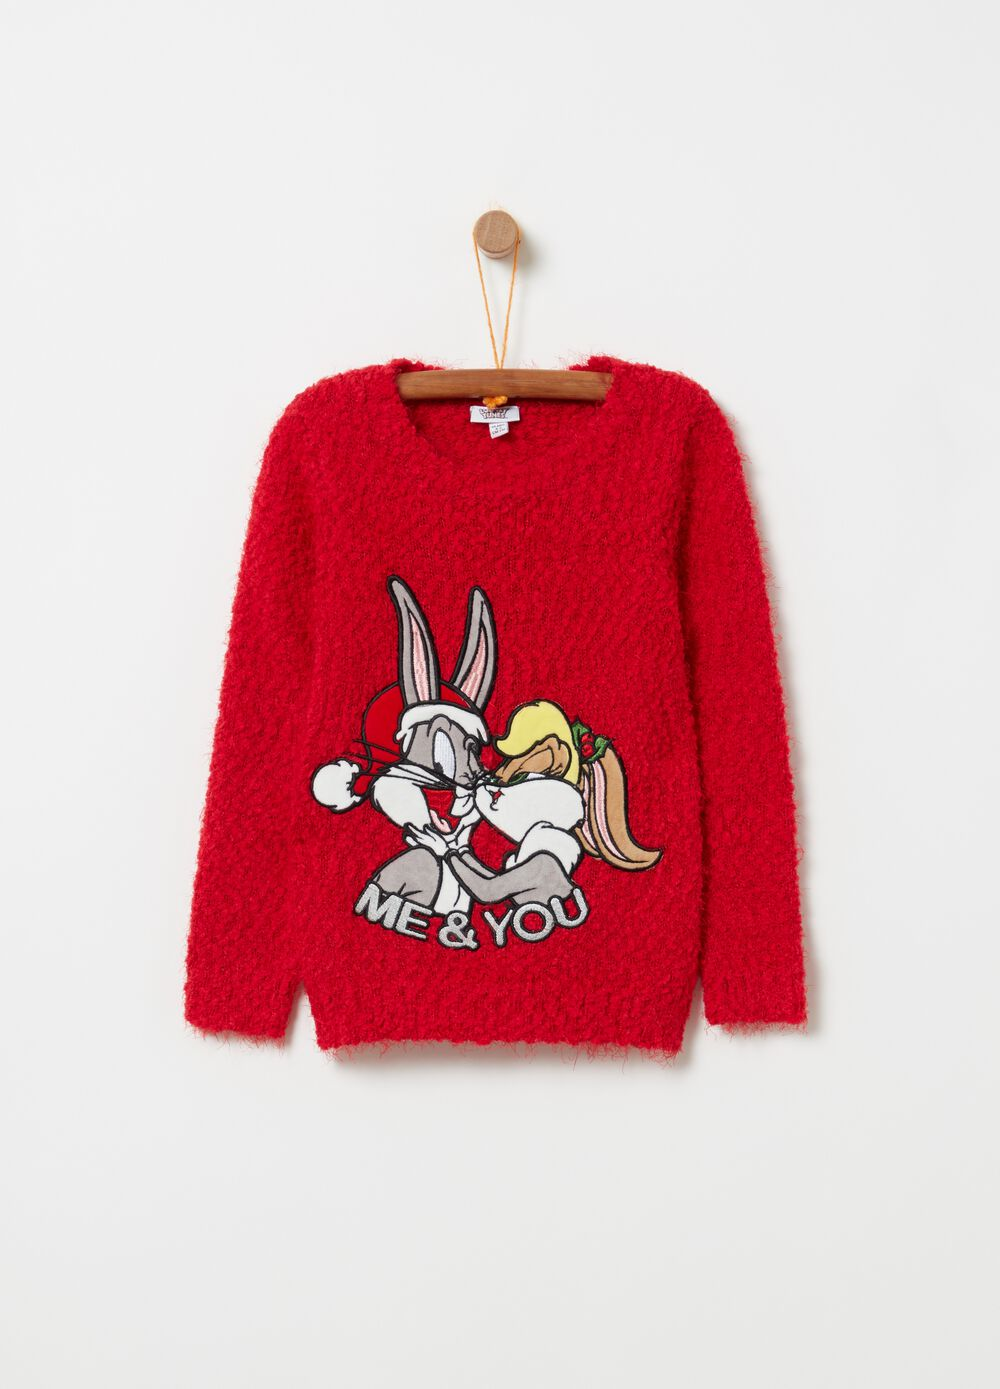 Knitted pullover with Lola and Bugs Bunny embroidery